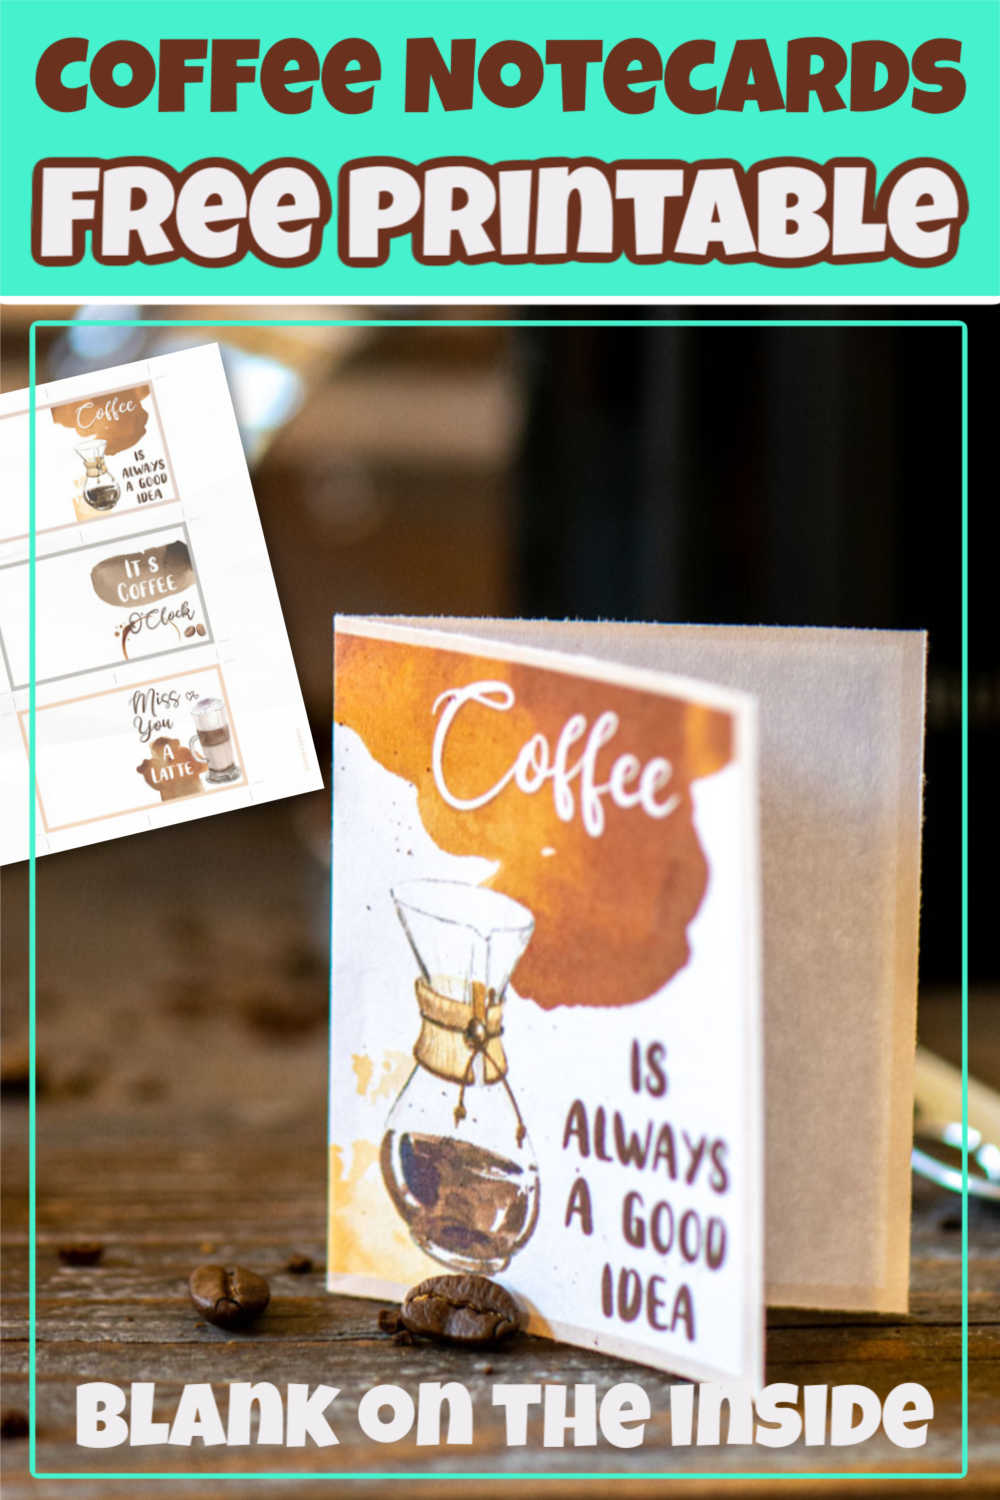 I love these free coffee notecard printables. Print them and keep them for those special occasions when a hand-written notecard is right for the moment. #coffee #notecards #printables